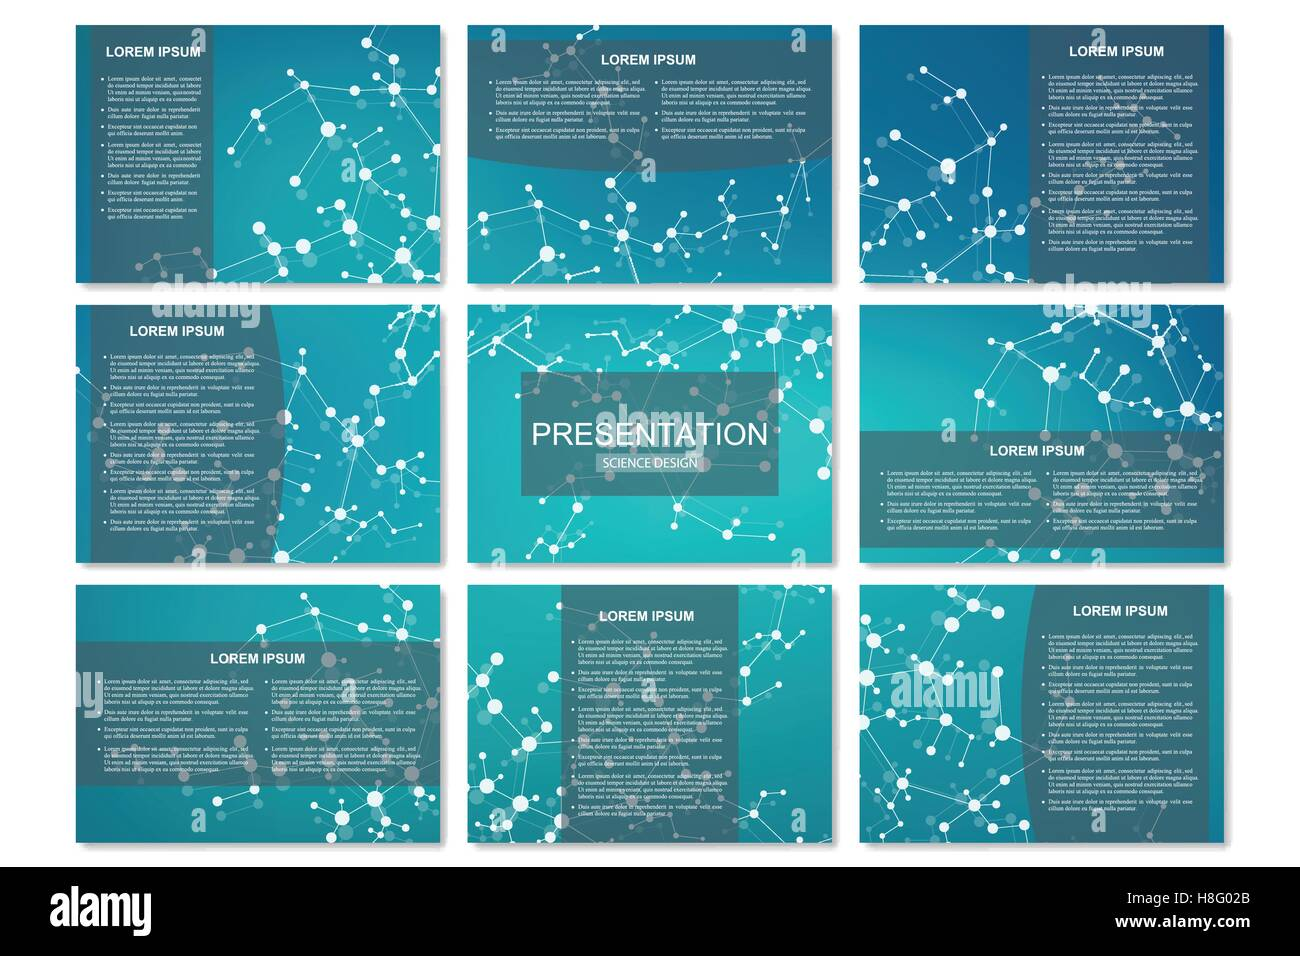 science presentation templates